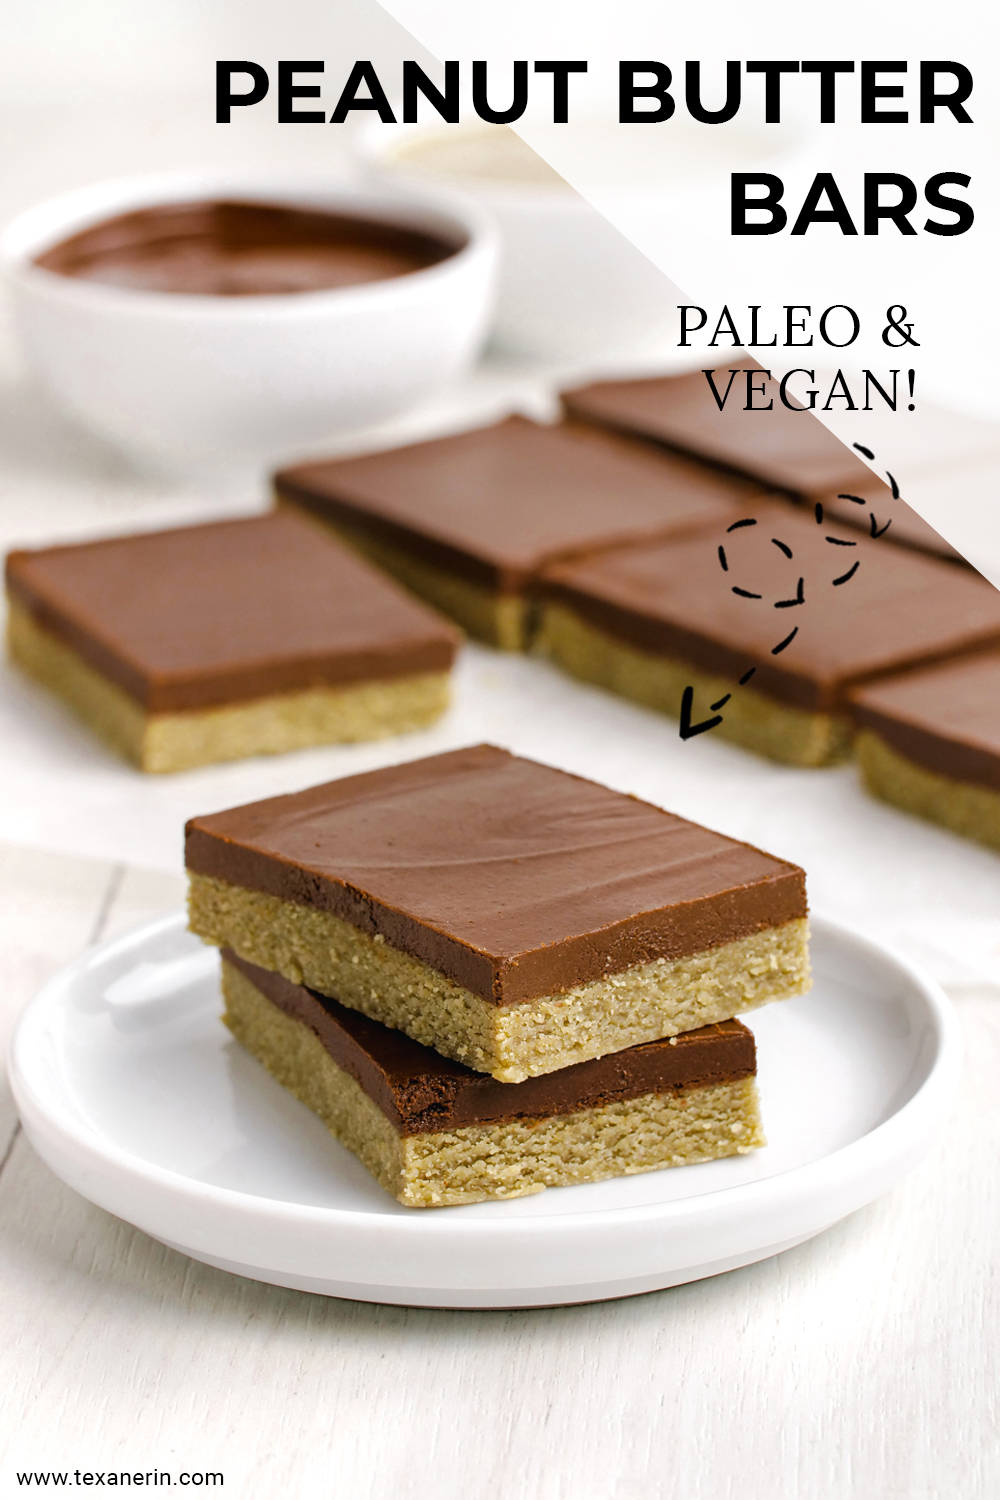 These amazing paleo peanut butter bars only use 5 ingredients, are no-bake, super easy to put together and are also vegan.